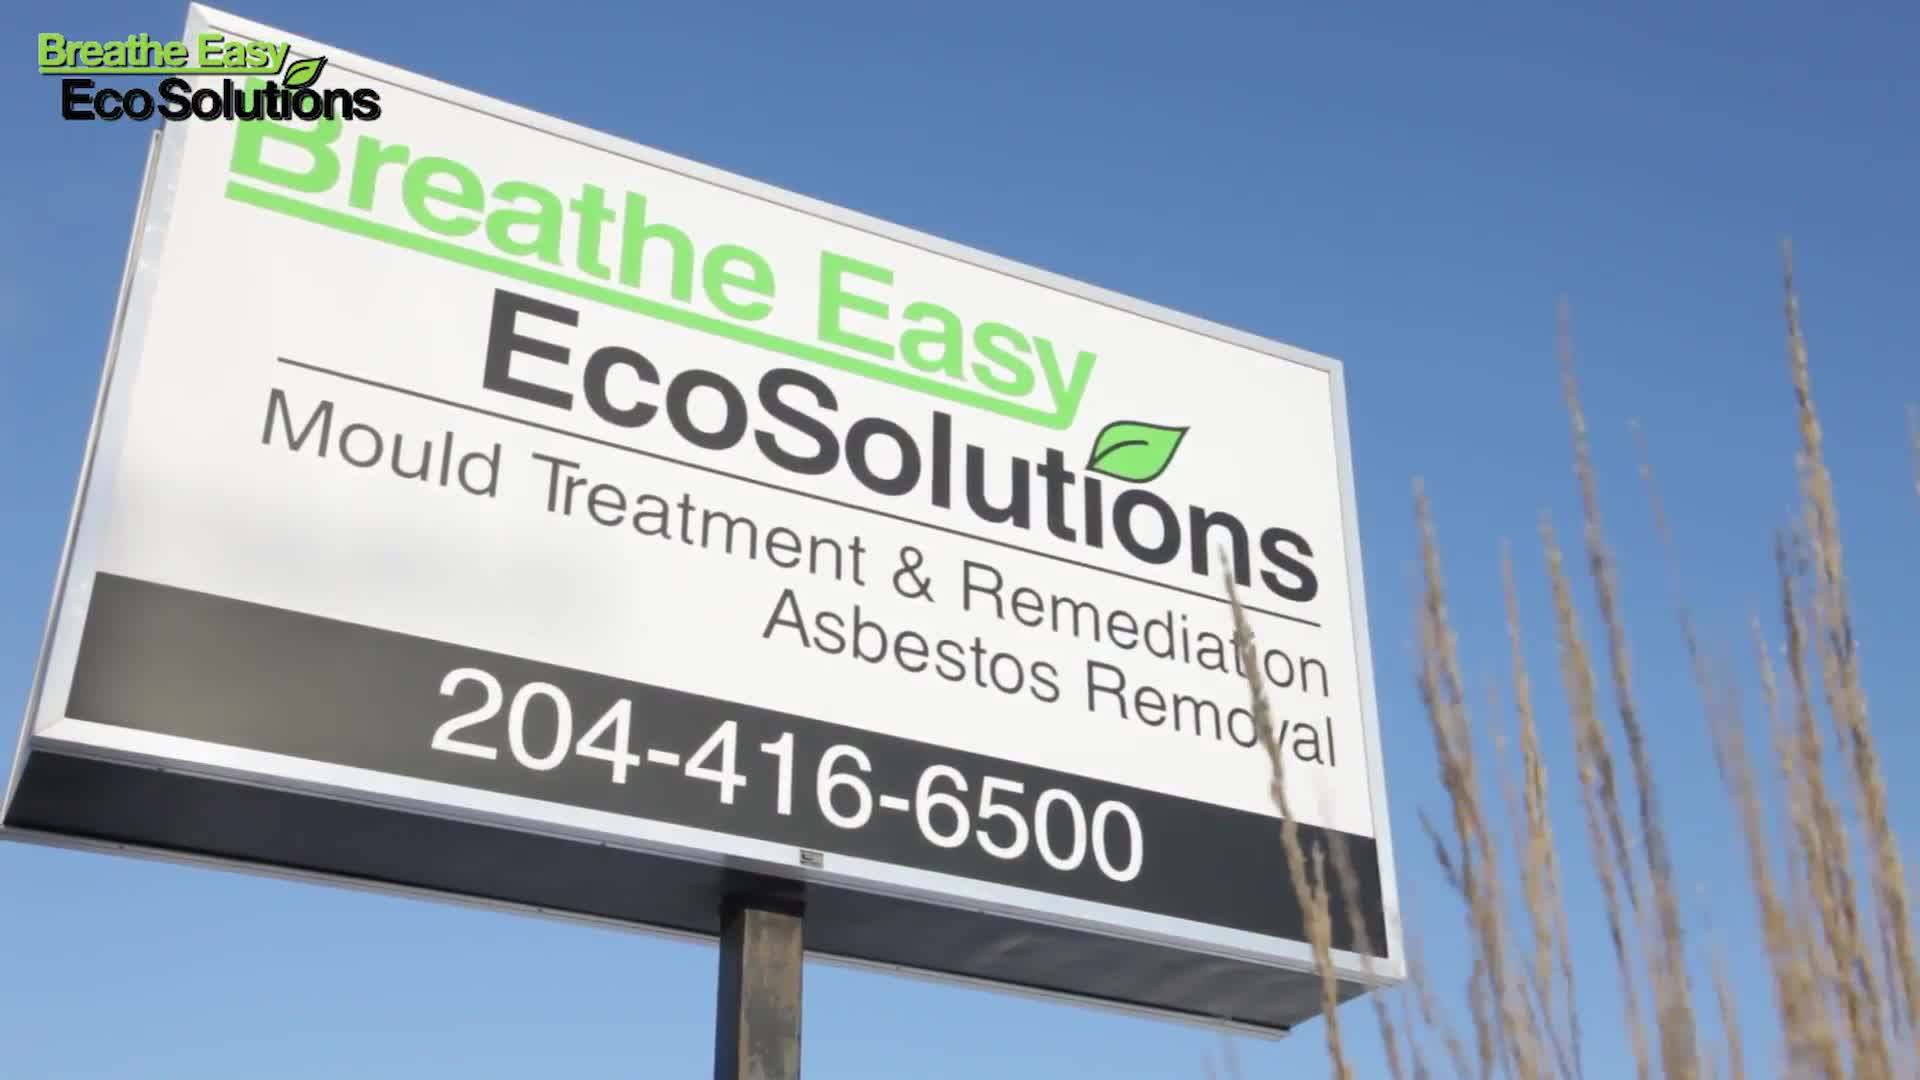 Breathe Easy Eco Solutions - Duct Cleaning - 204-416-6500